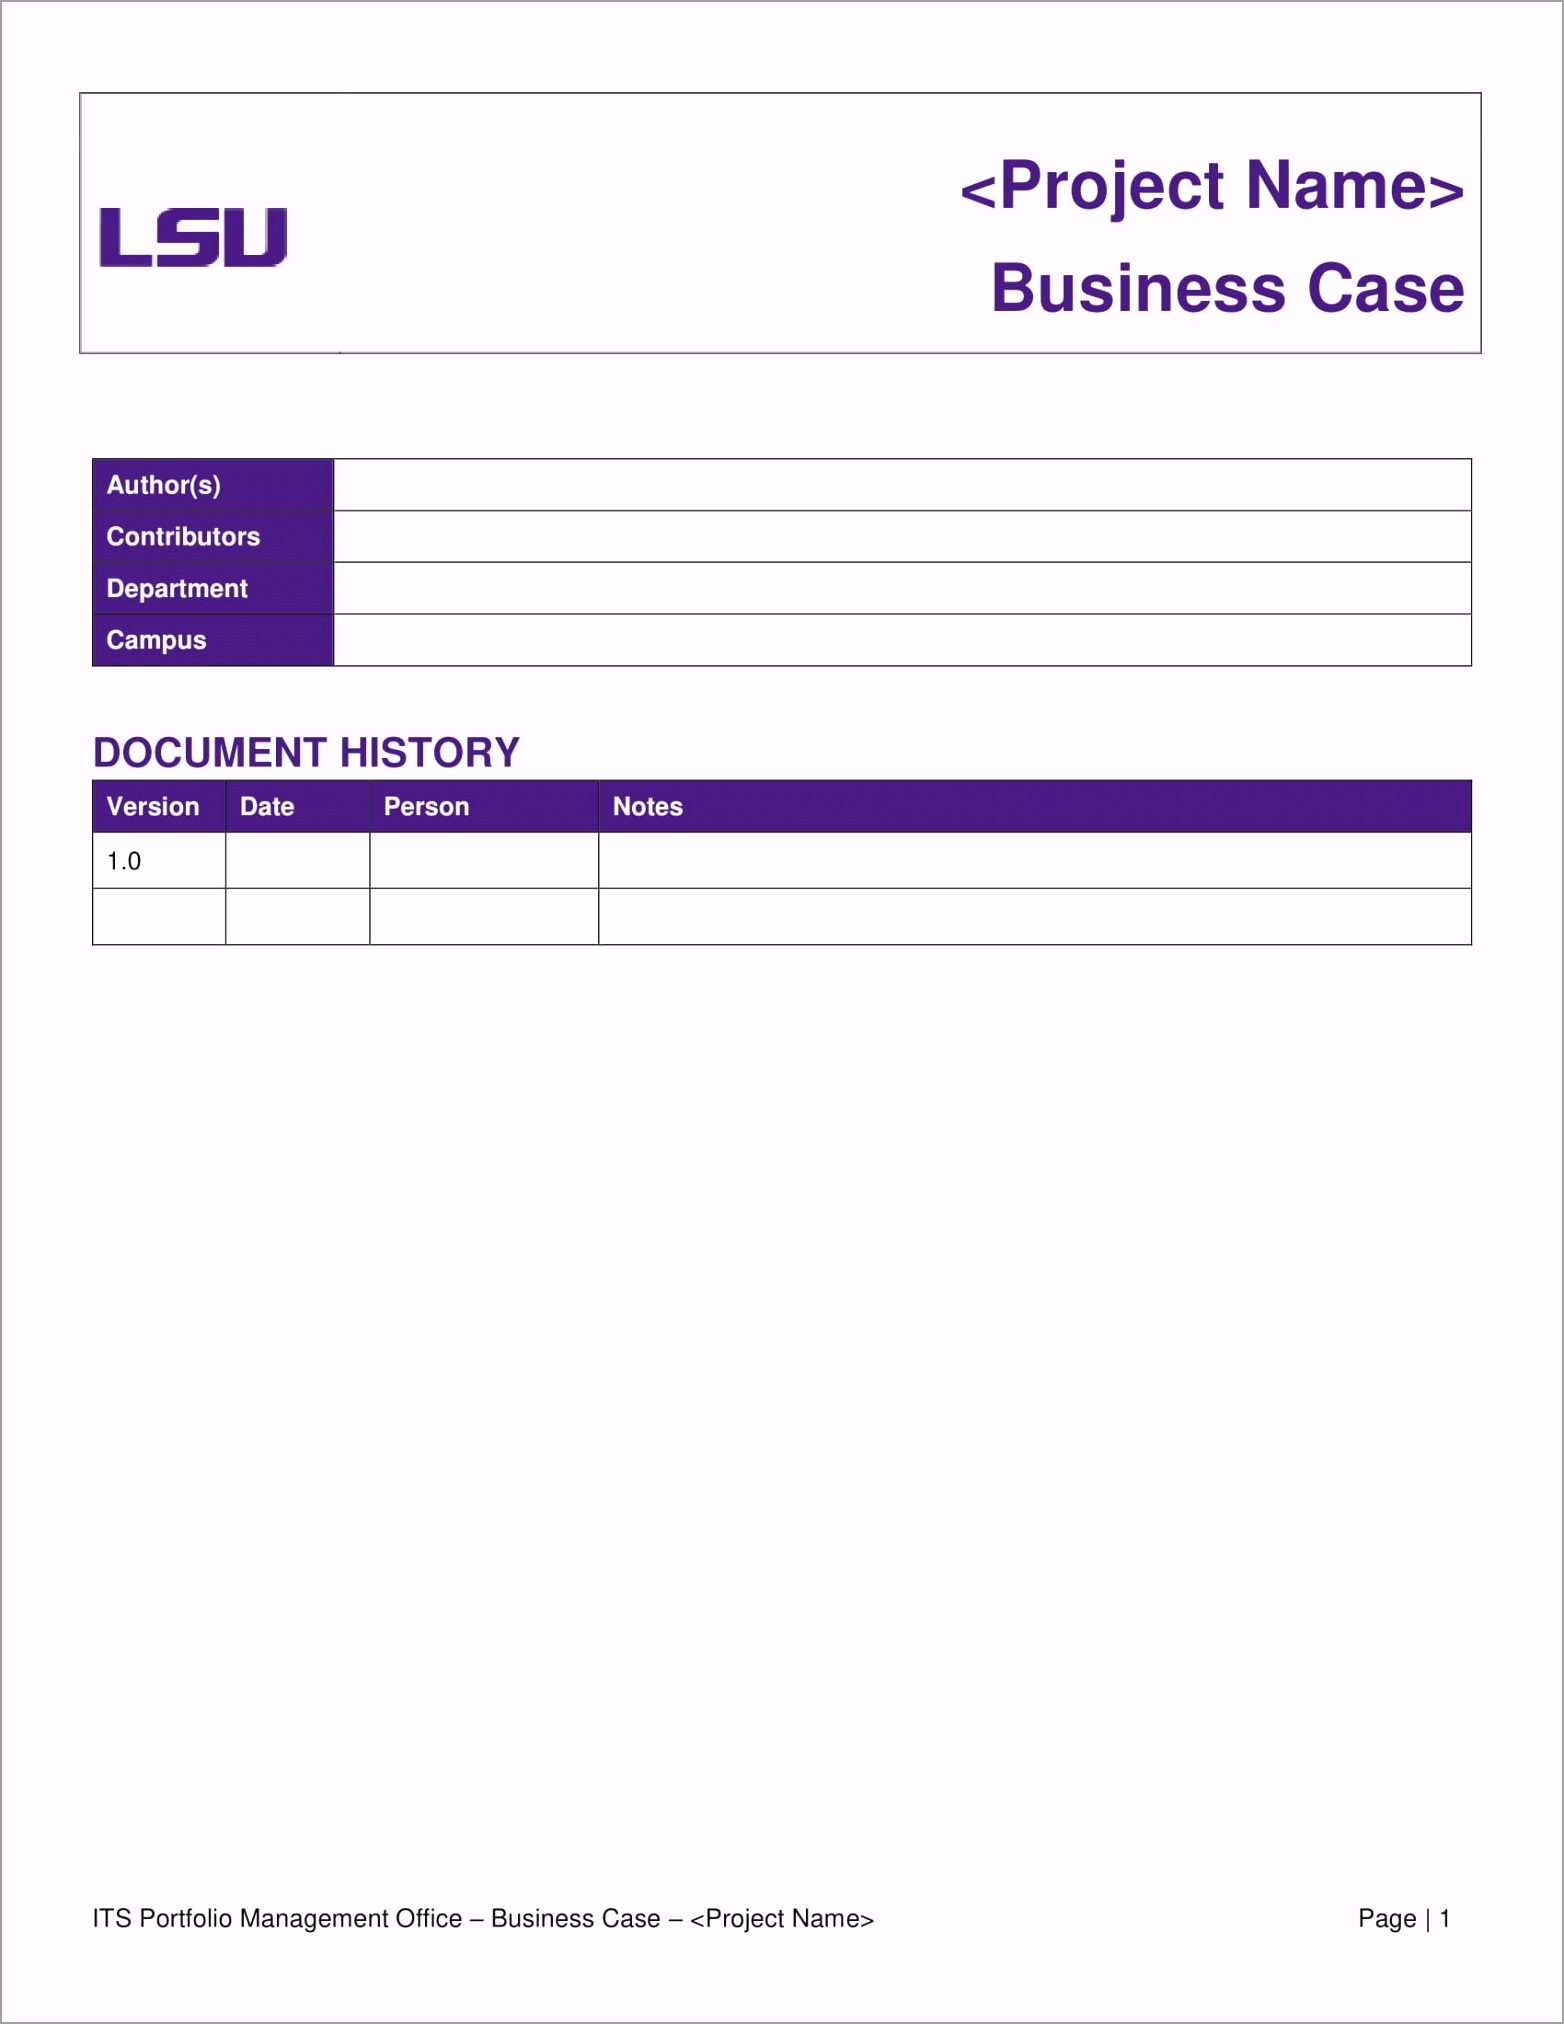 Business Case Analysis Template Example 01 uuuqr